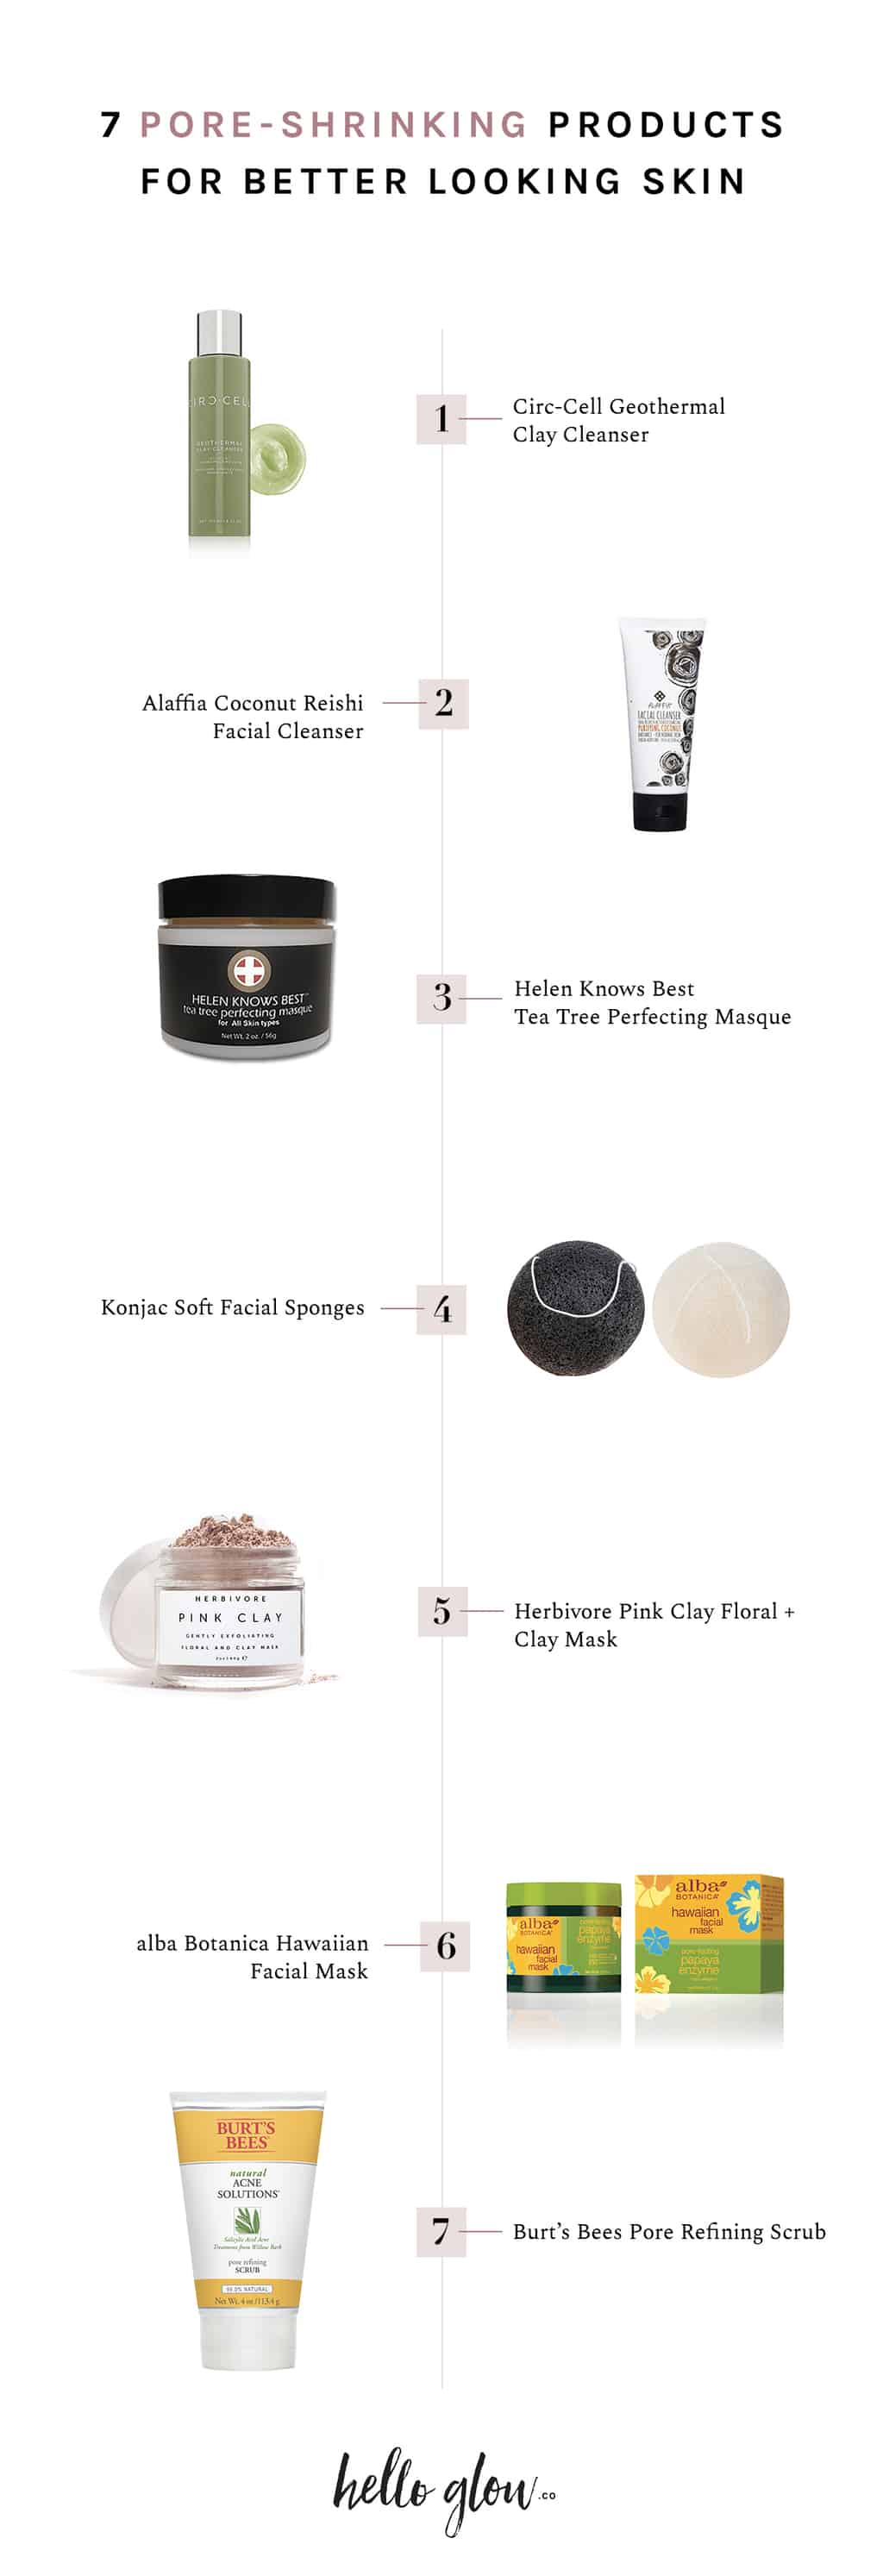 7 Favorite Pore-Shrinking Products